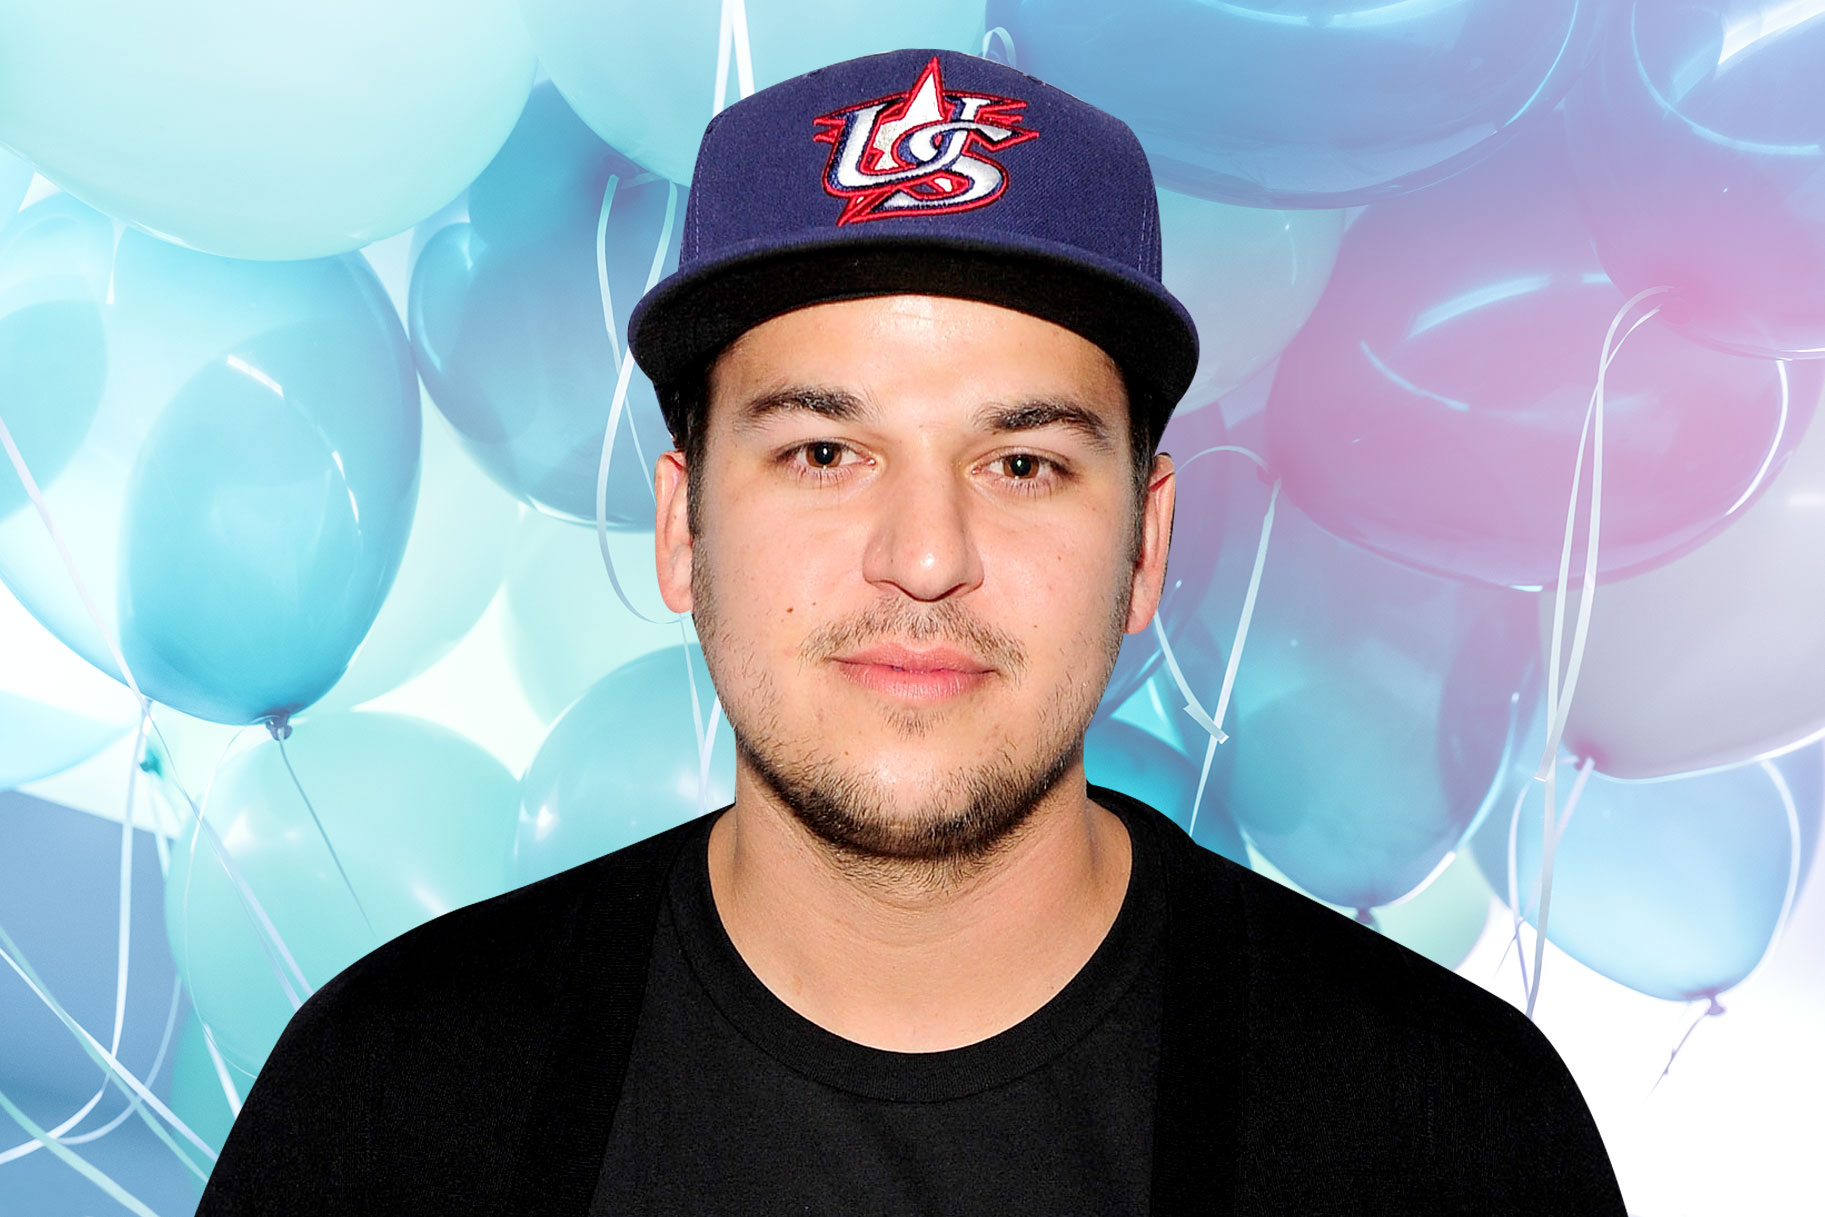 kuwtk-rob-kardashian-inside-his-goals-for-the-new-year